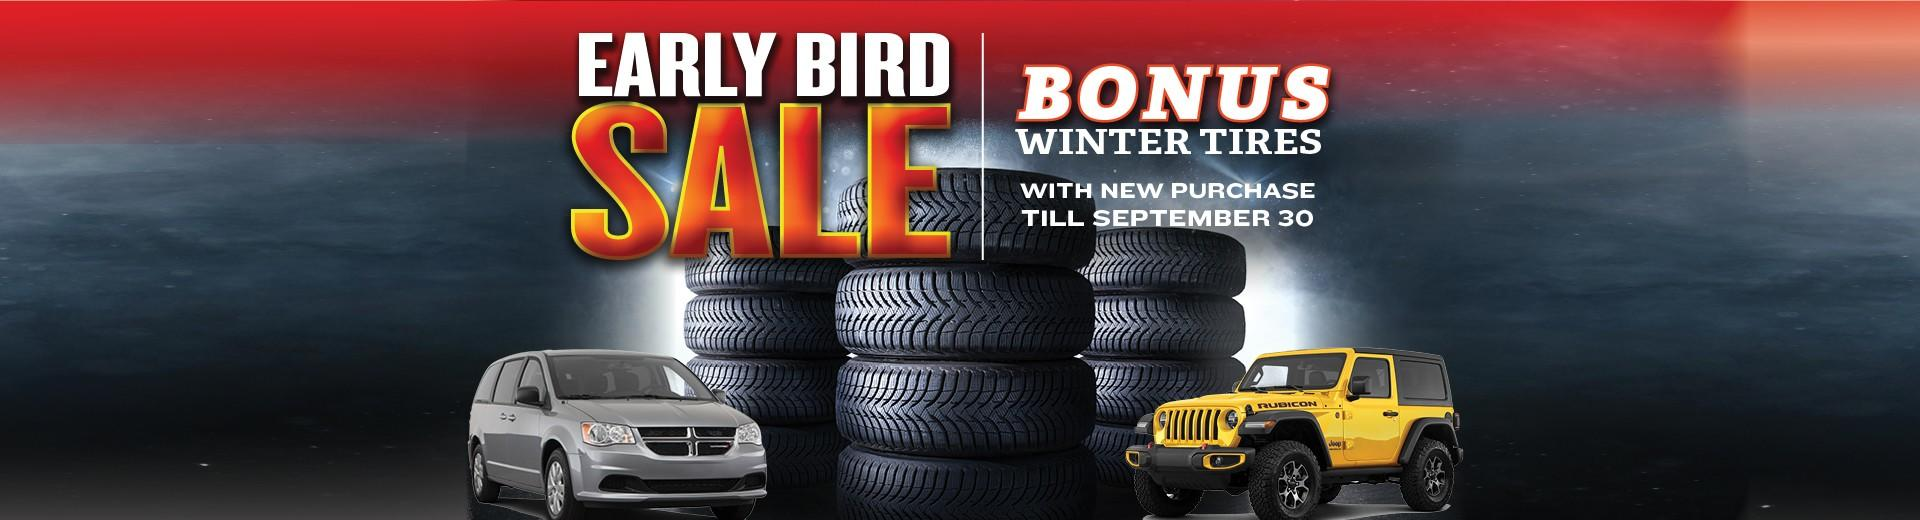 Early Bird Winter Tire Sale at Eastern Chrysler Dodge Jeep Ram in 1900 MAIN STREET